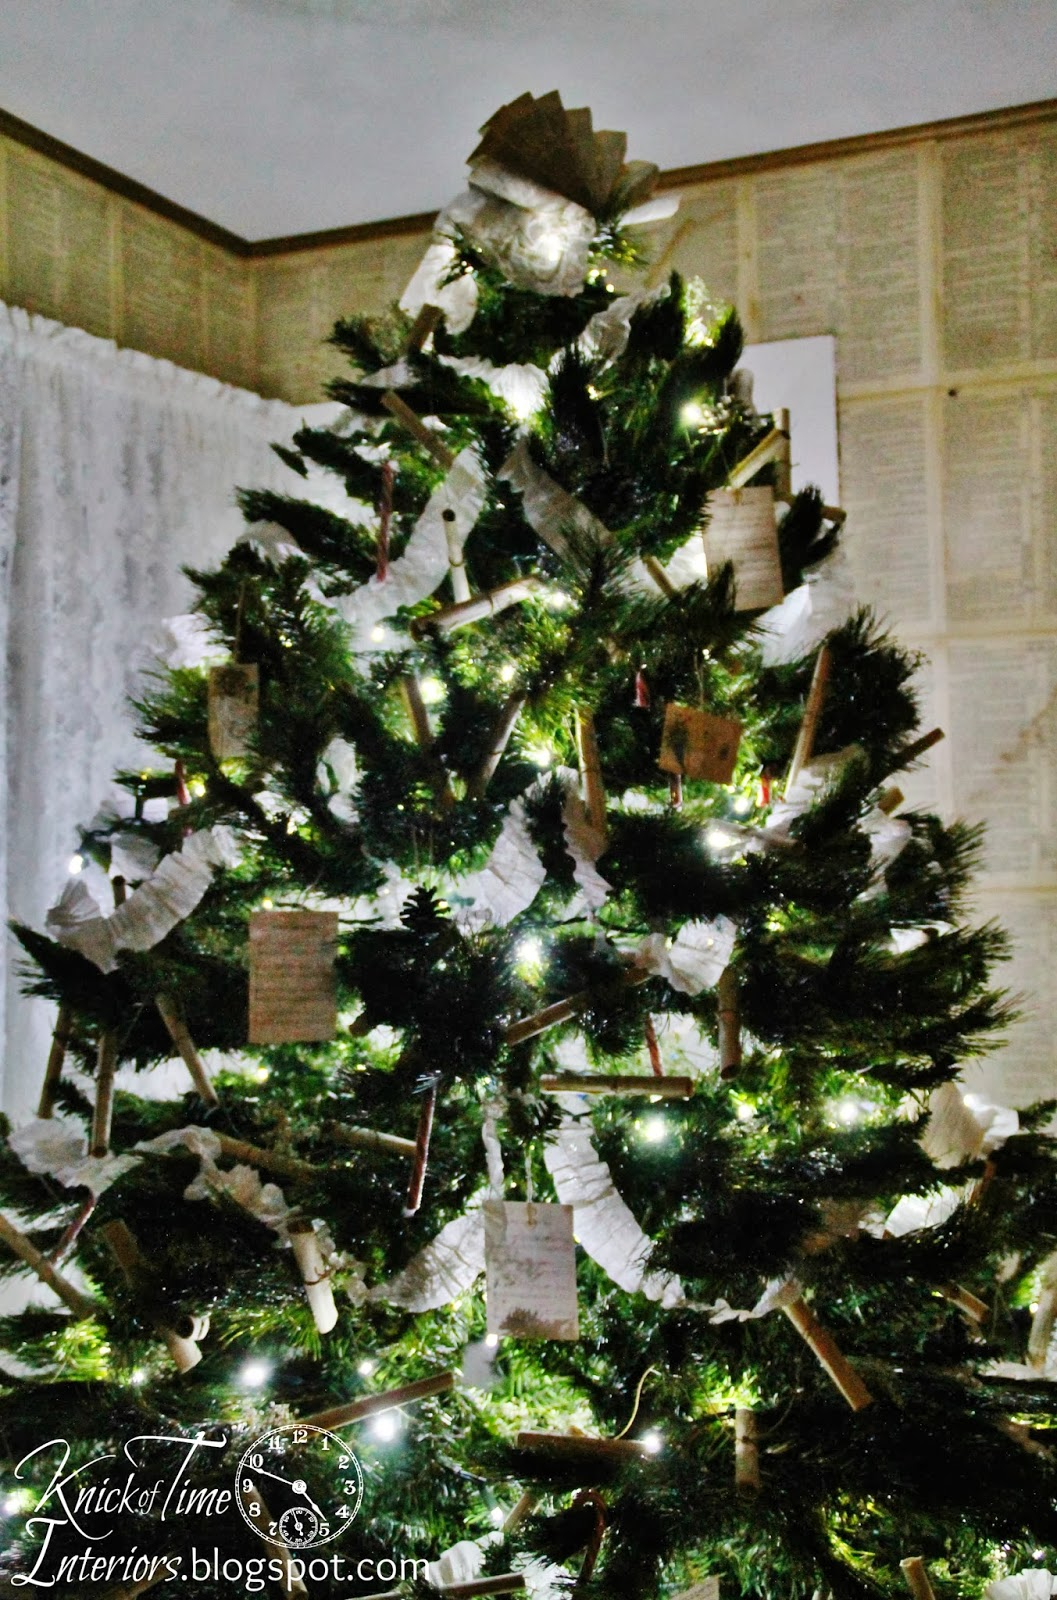 Christmas Tree Vintage Style Knick Of Time